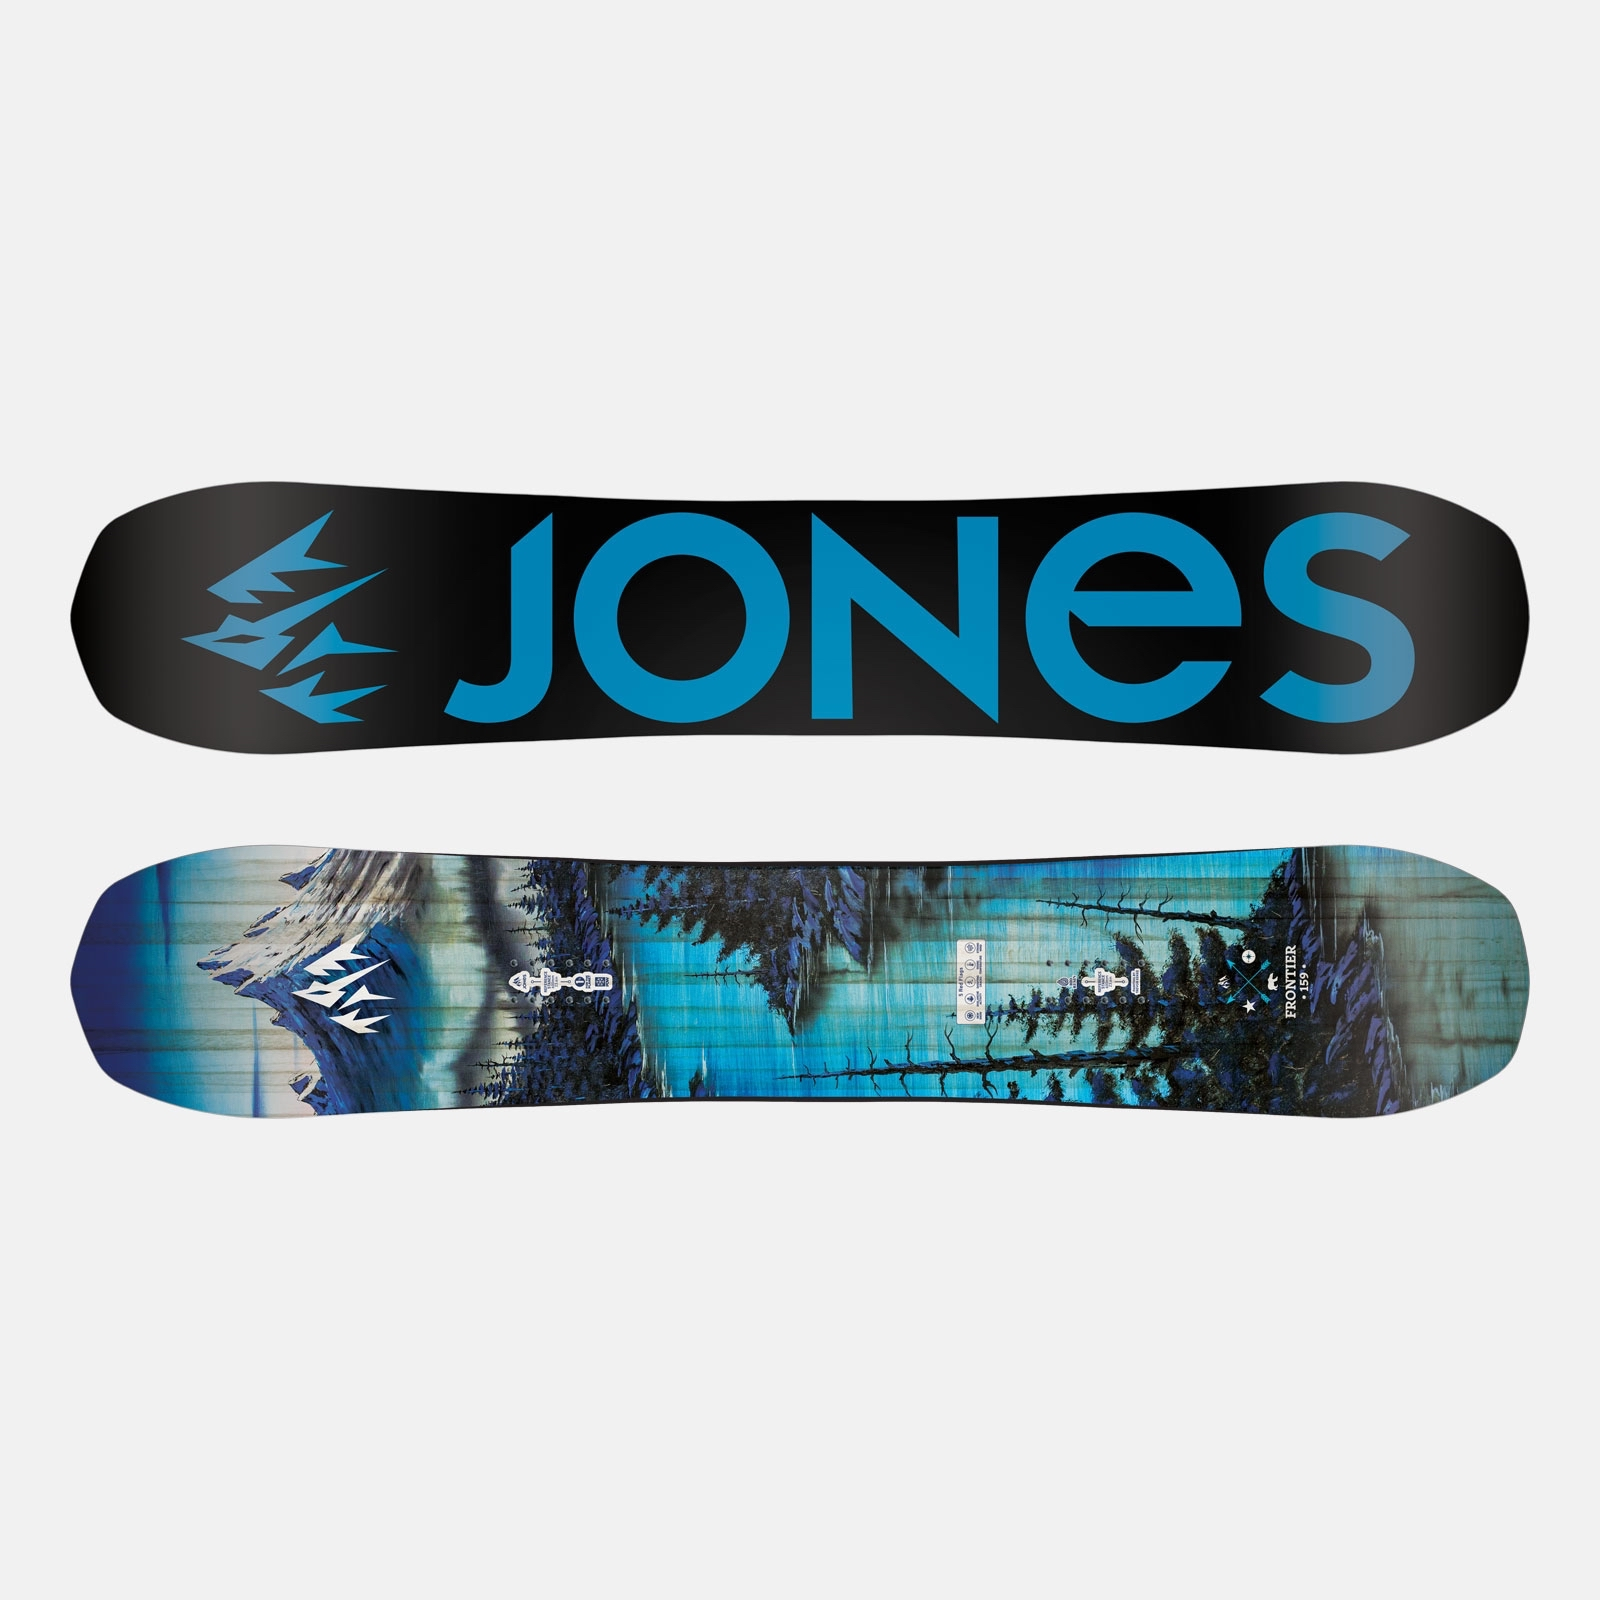 Die besten All Mountain Snowboards 2020/21 Jones | Frontier